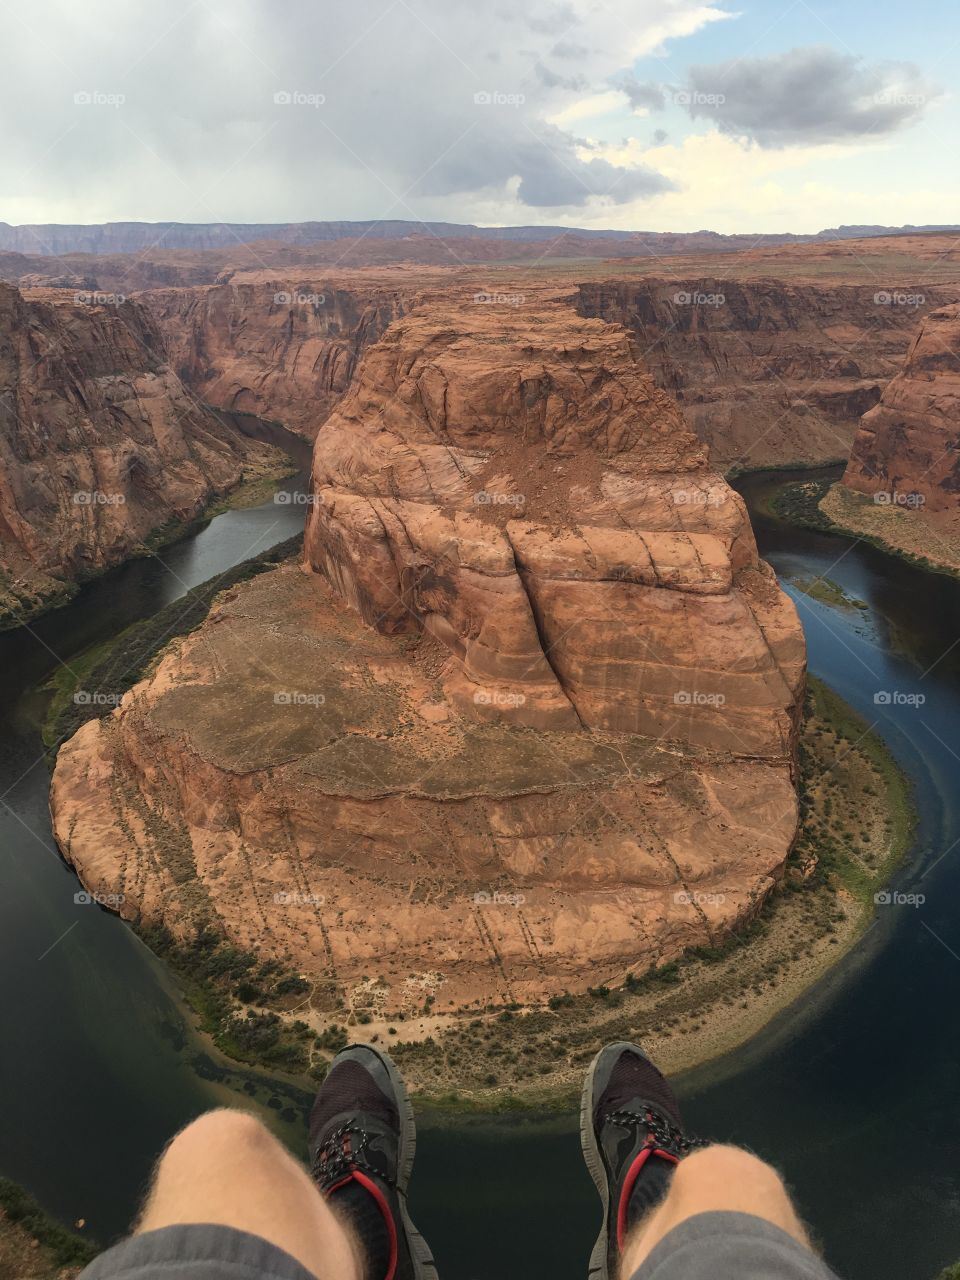 After three weeks of living on the road out of a tent across the most beautiful landscapes in North America. I found myself here on the edge of the Horseshoe Bend of the Grand Canyon describing what I felt best for that period of time; living on the edge.